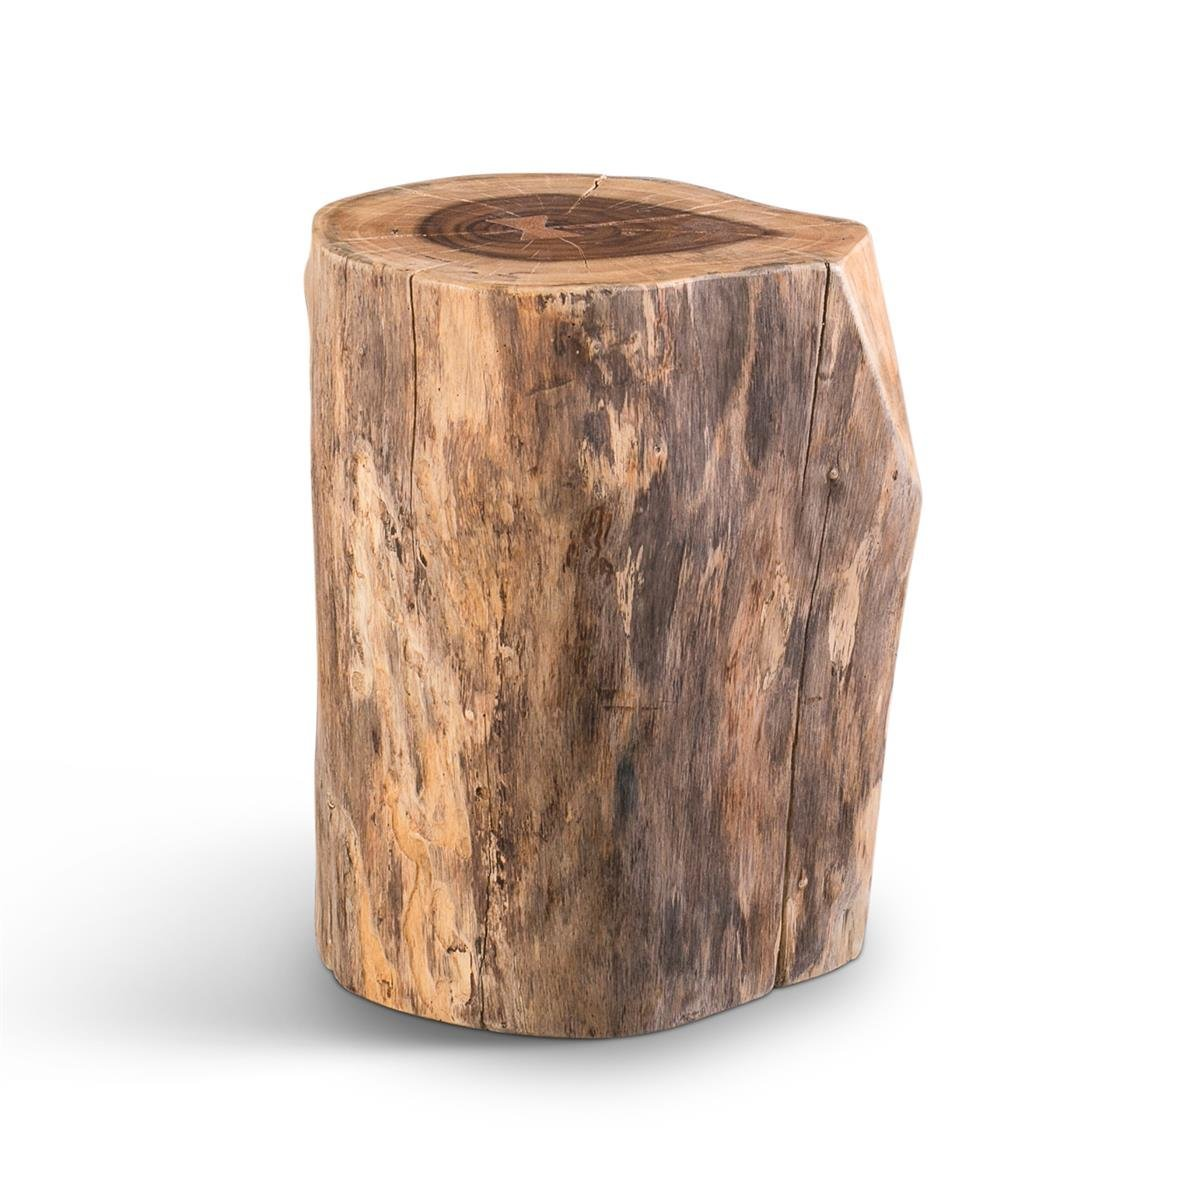 View Larger Image of Stump Stool/End Table (Natural)